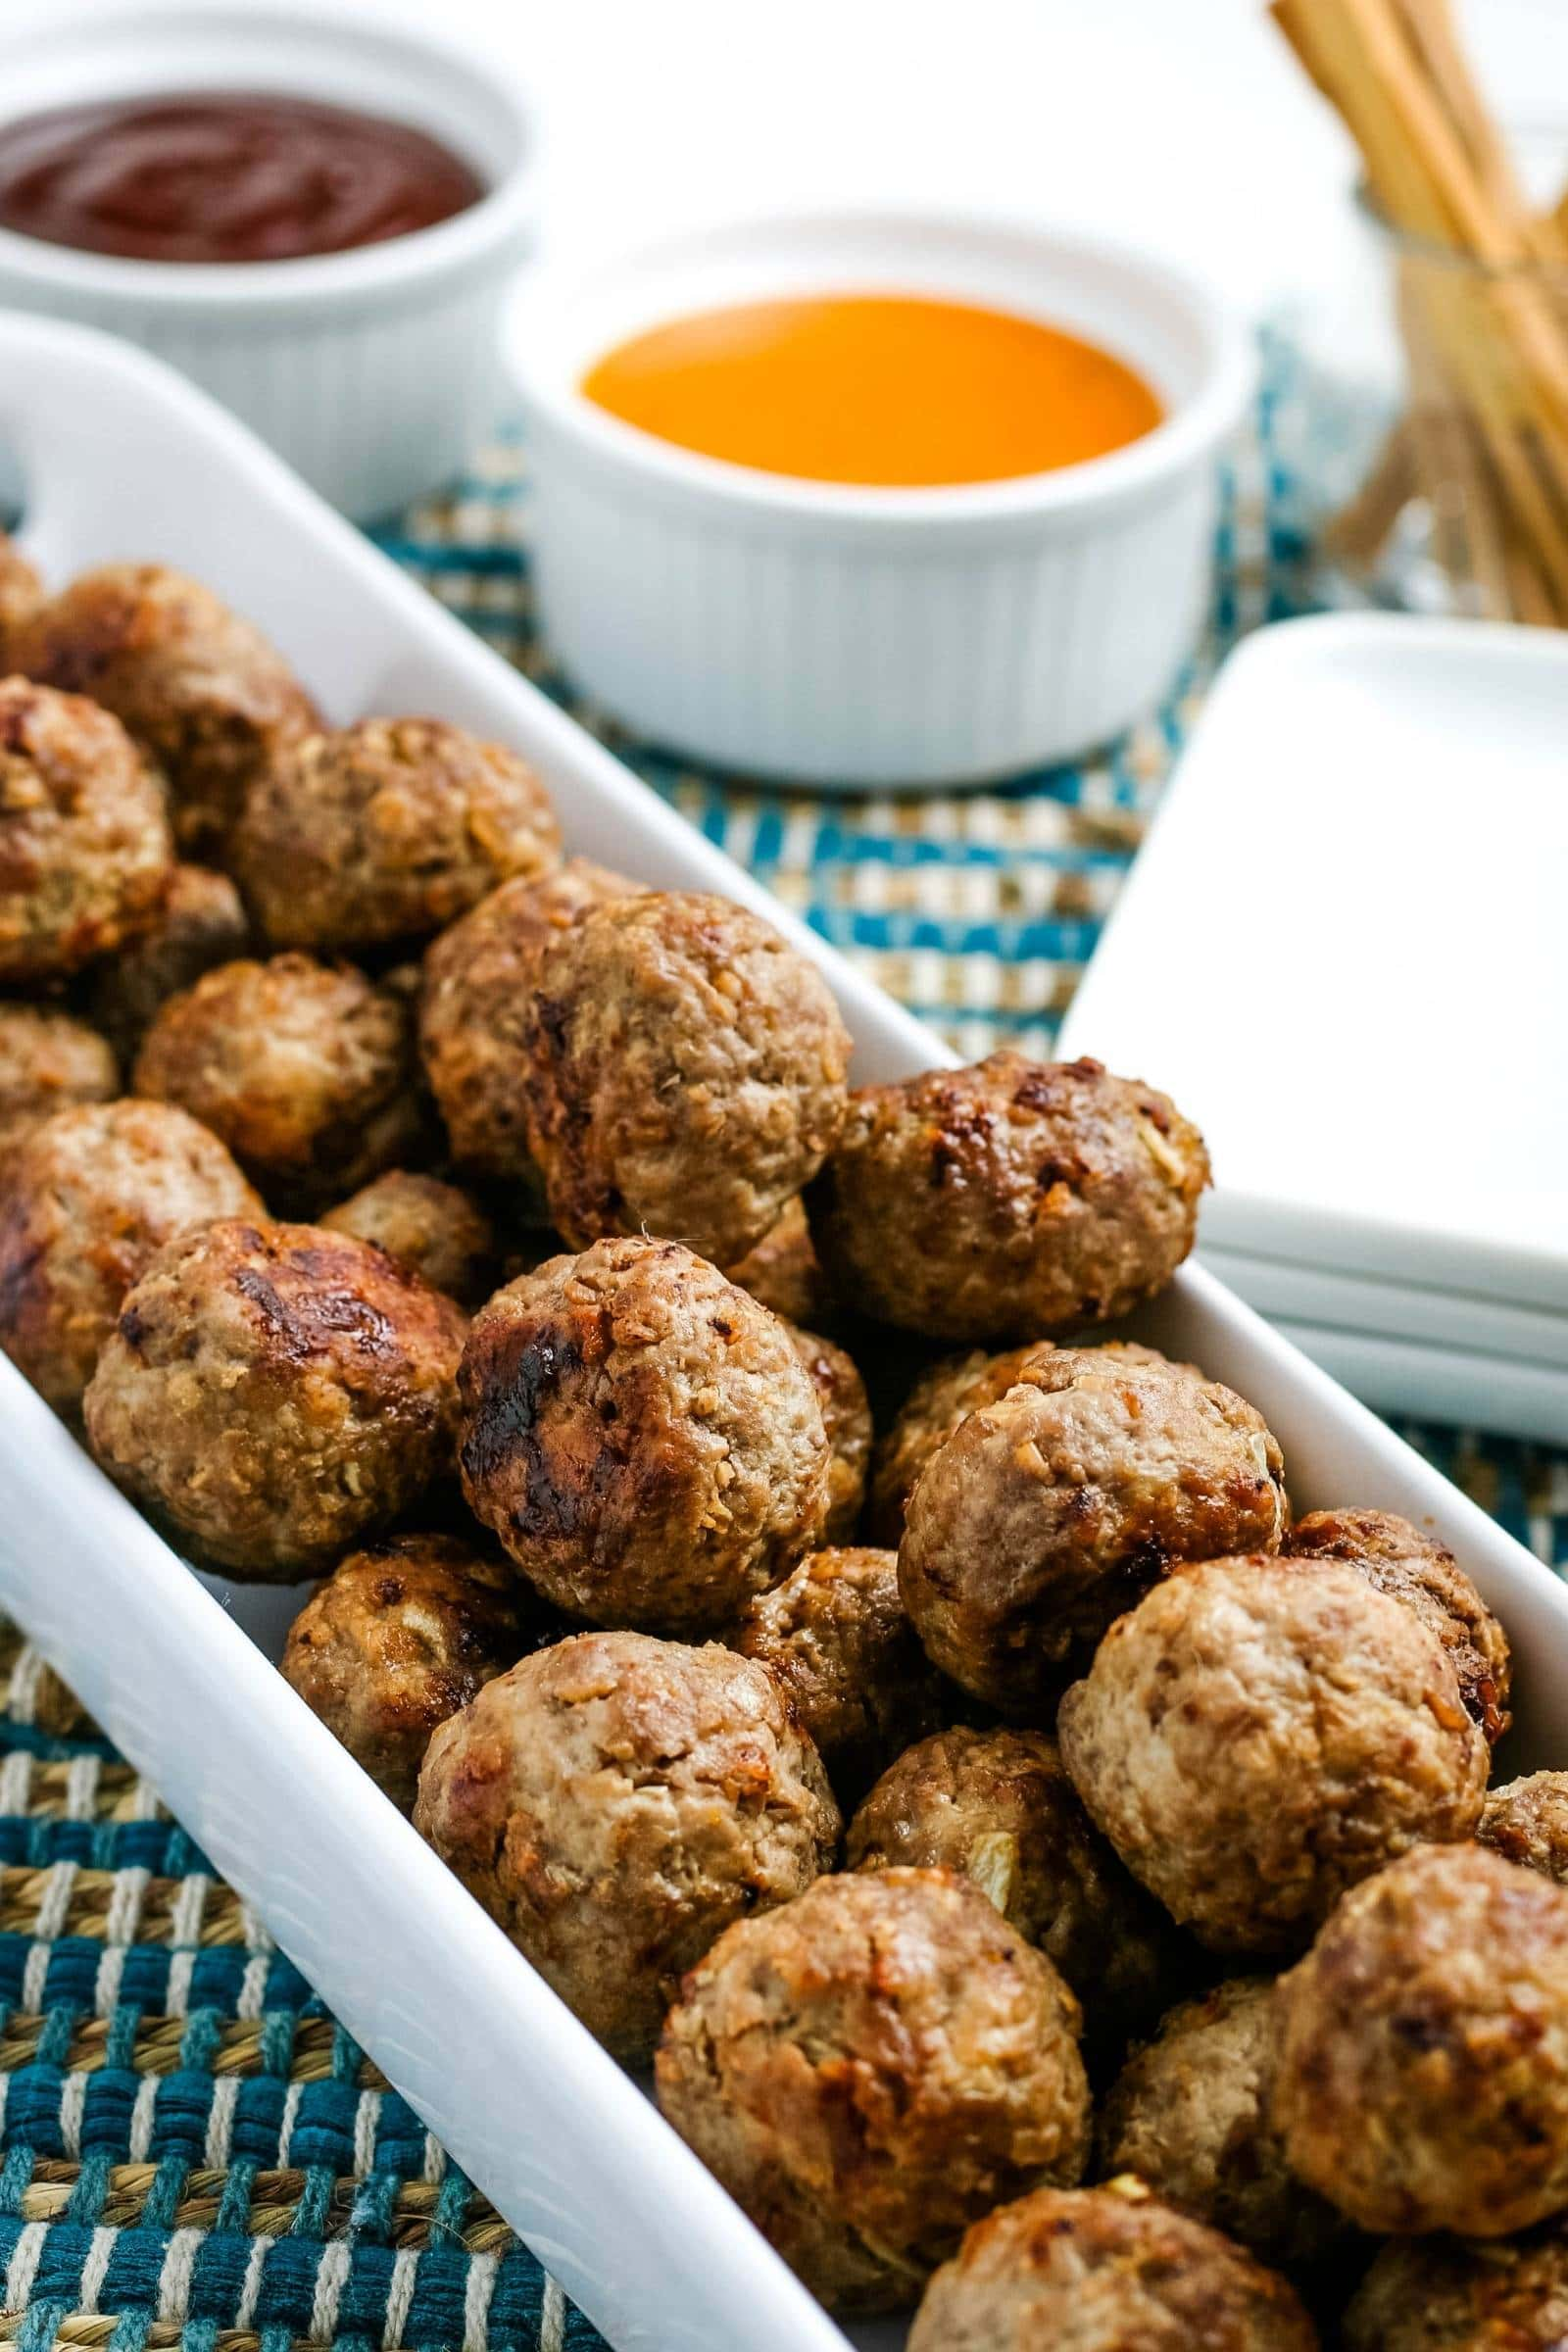 cooked air fryer meatballs on a white plate with dipping sauces in the background